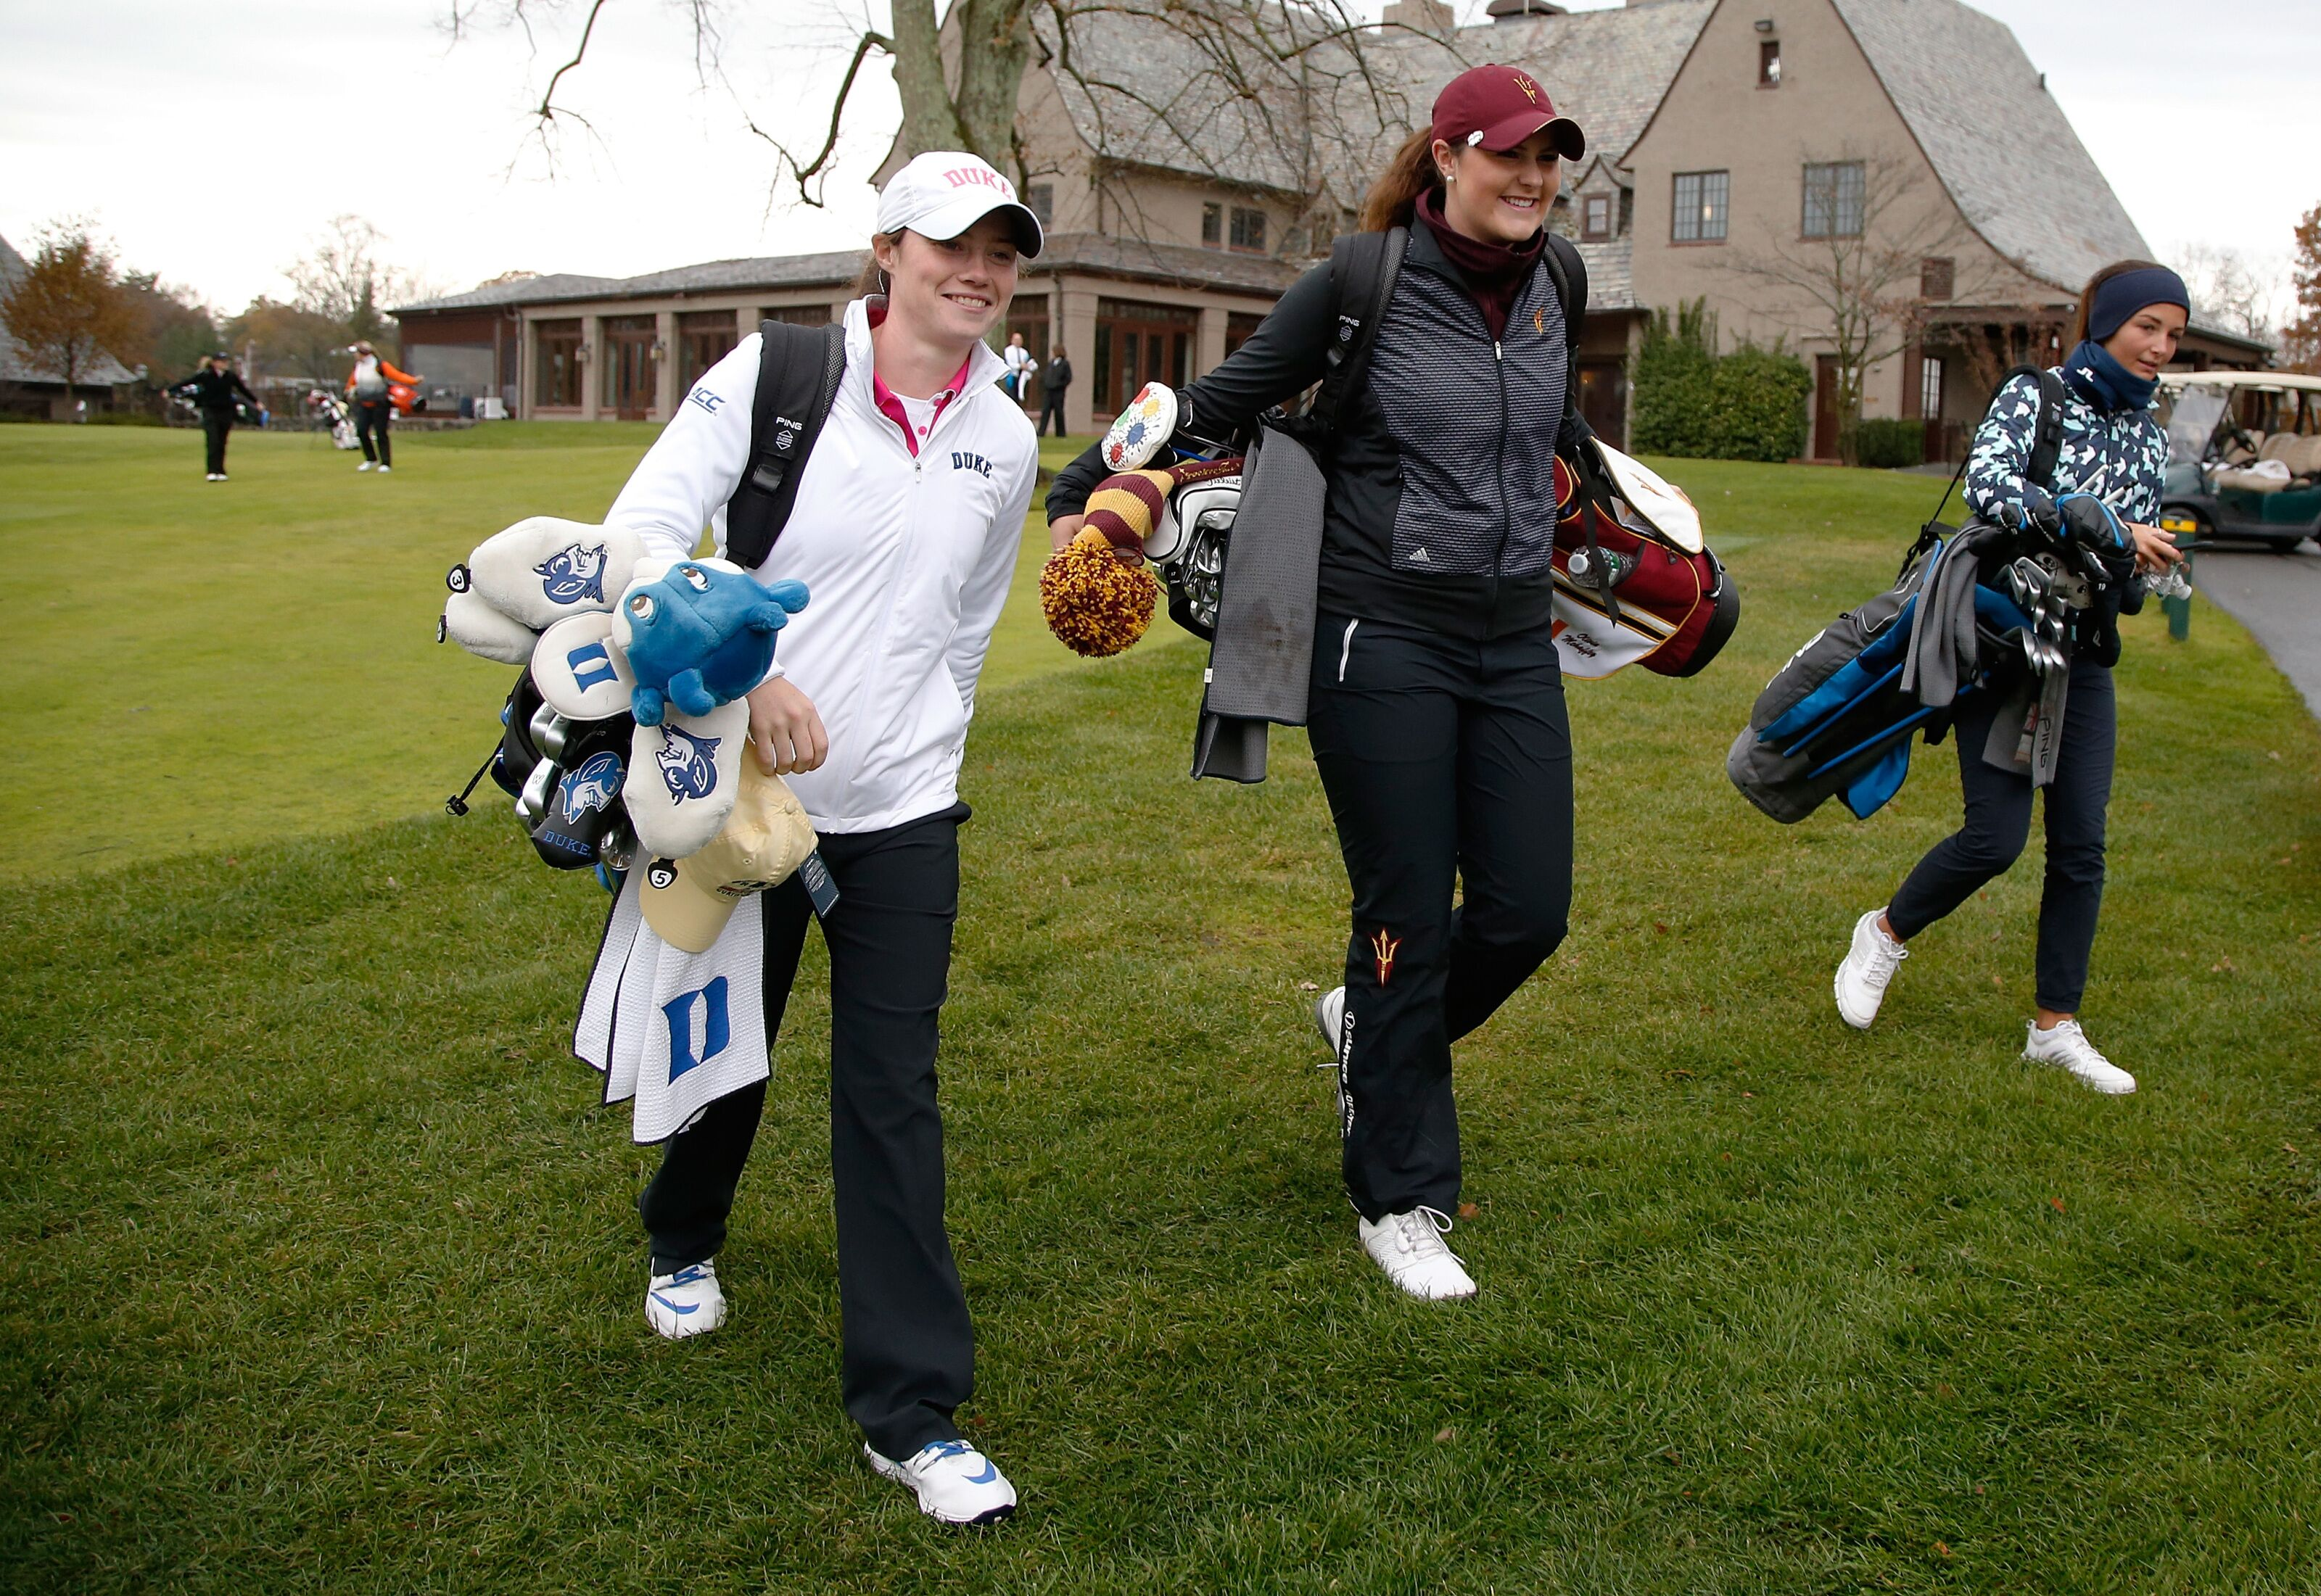 2018 Curtis Cup Team USA: Ready for the GB&I challenge!